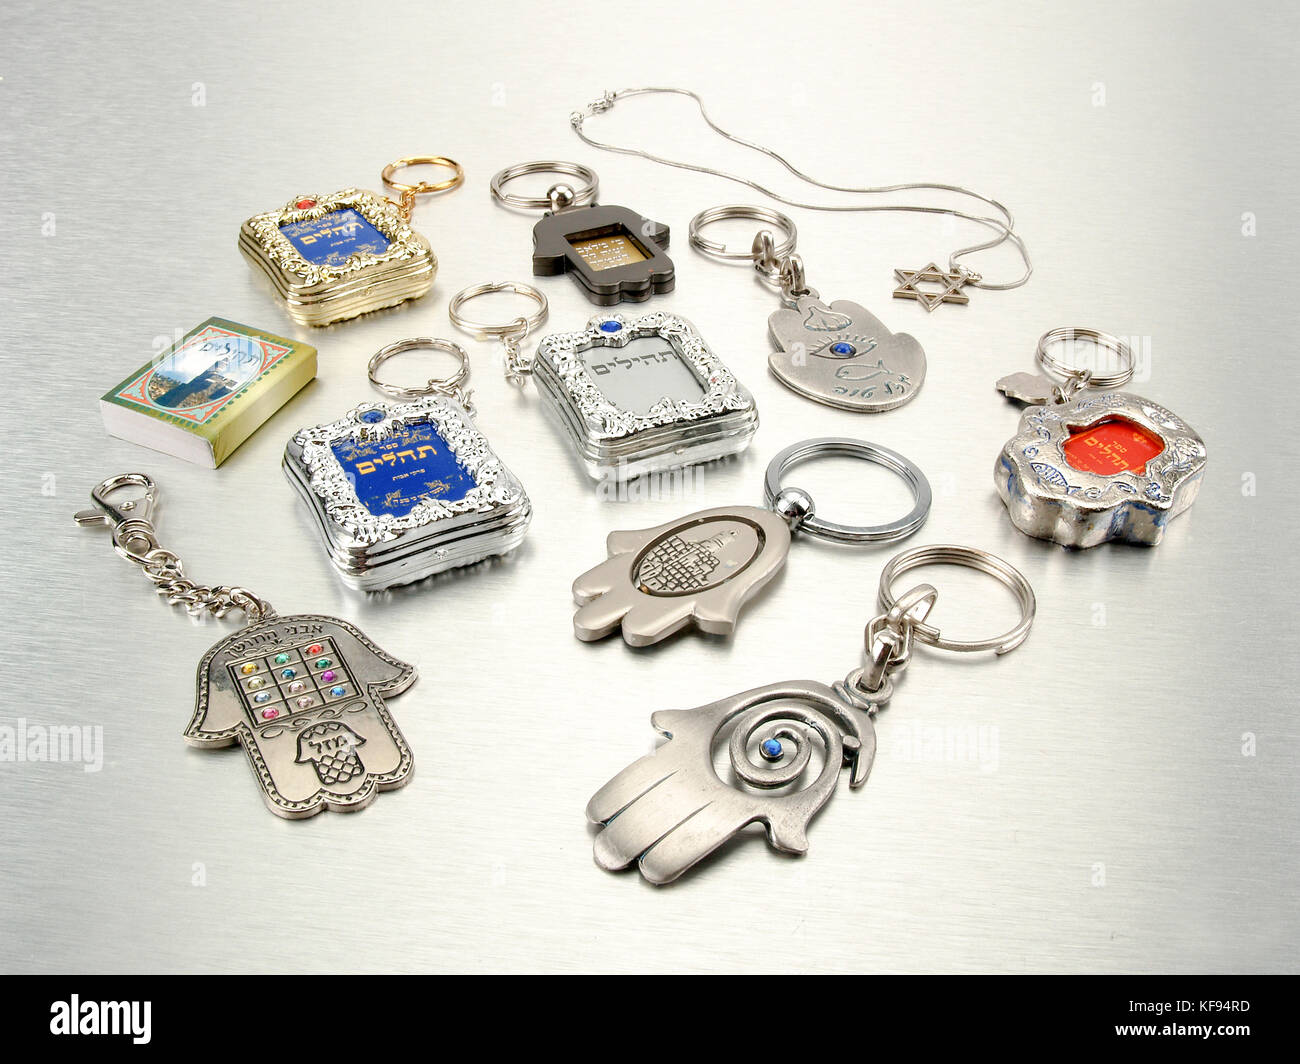 Small Judaica symbols, Humsa, Magen David, and Tehilim on silver background all popular amulets for protection from Stock Photo